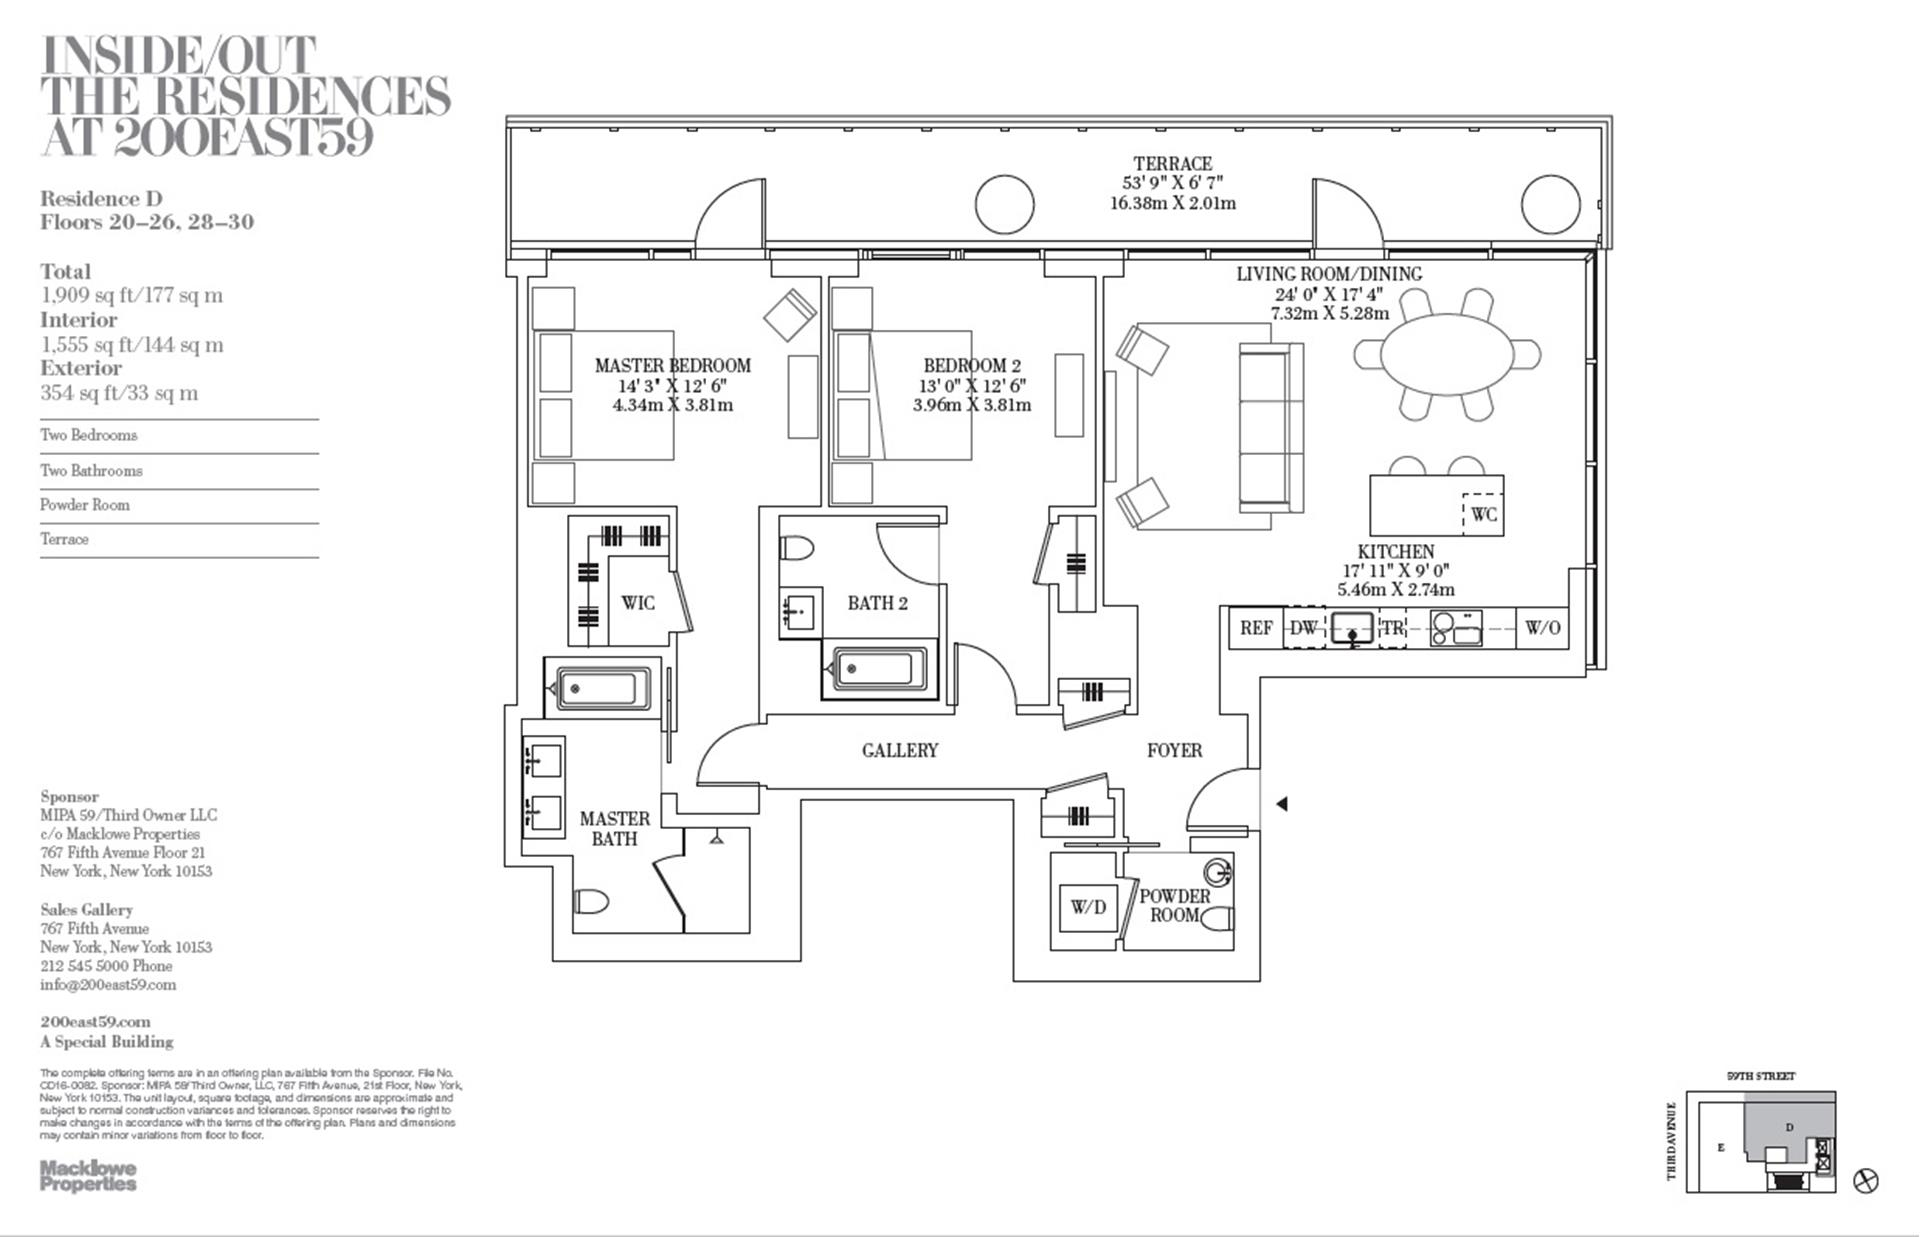 Floor plan of 200 East 59th St, 21D - Midtown, New York